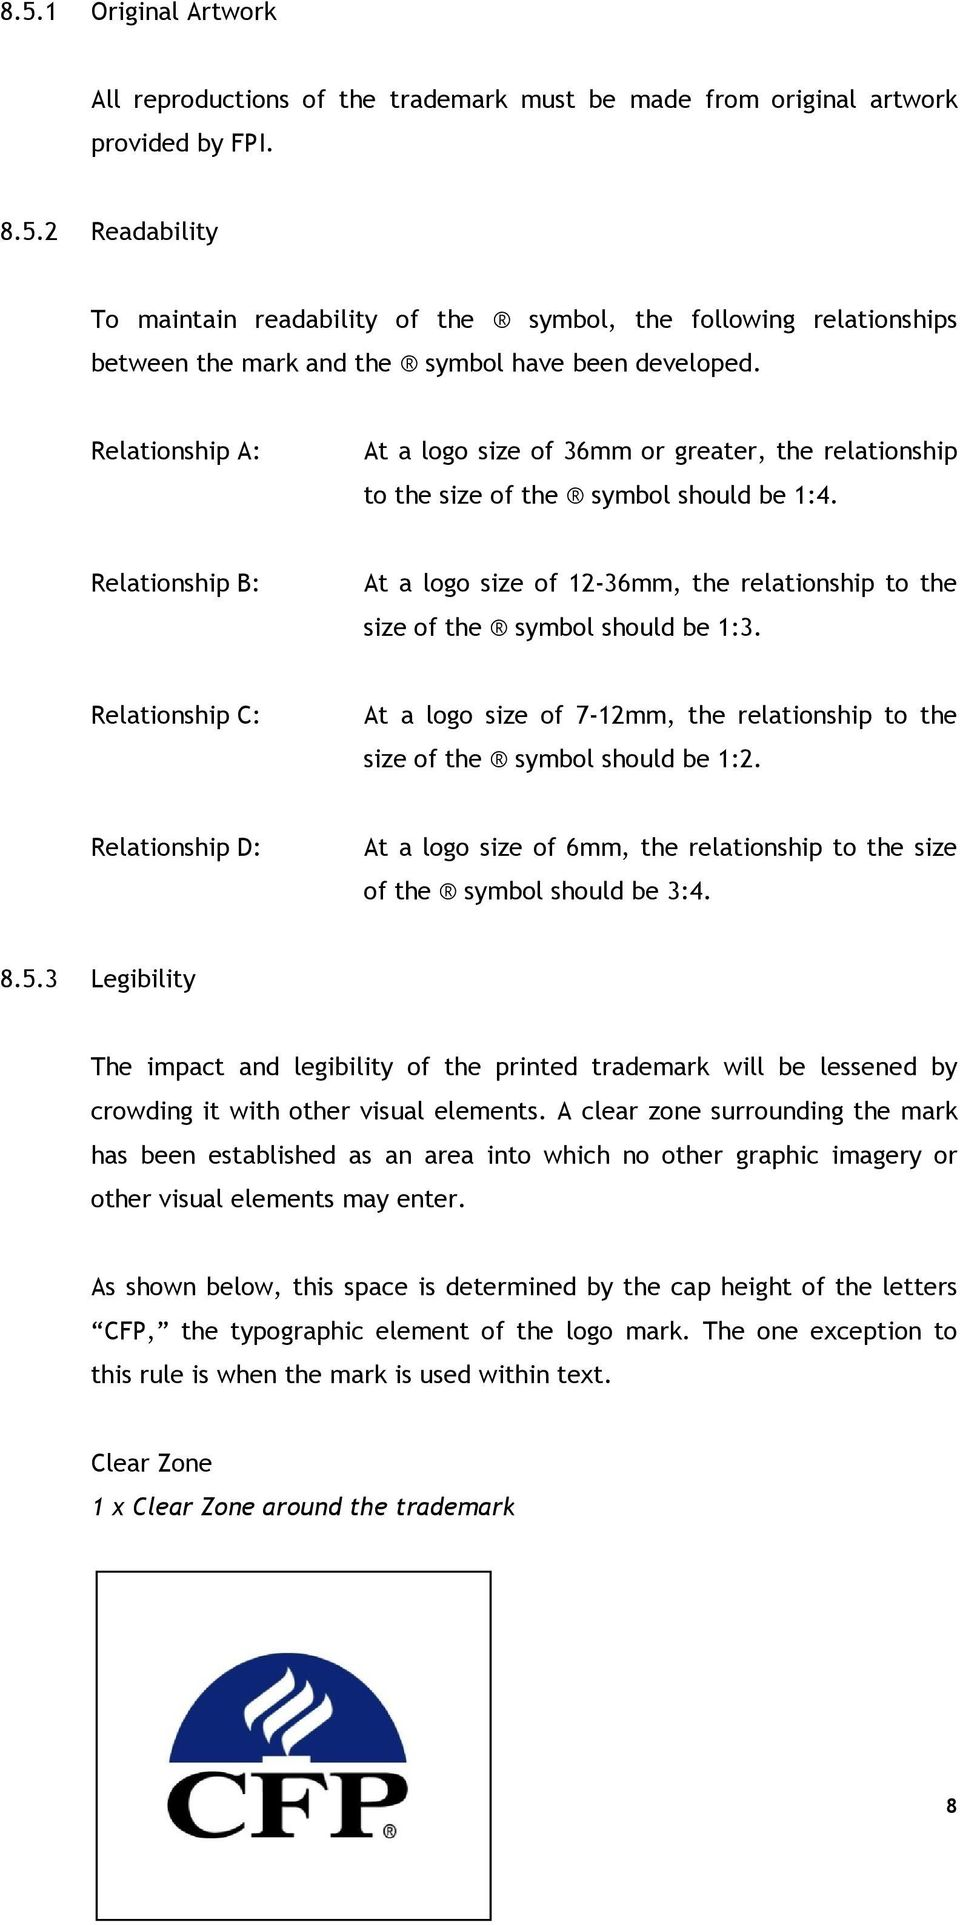 Relationship B: At a logo size of 12-36mm, the relationship to the size of the symbol should be 1:3. Relationship C: At a logo size of 7-12mm, the relationship to the size of the symbol should be 1:2.